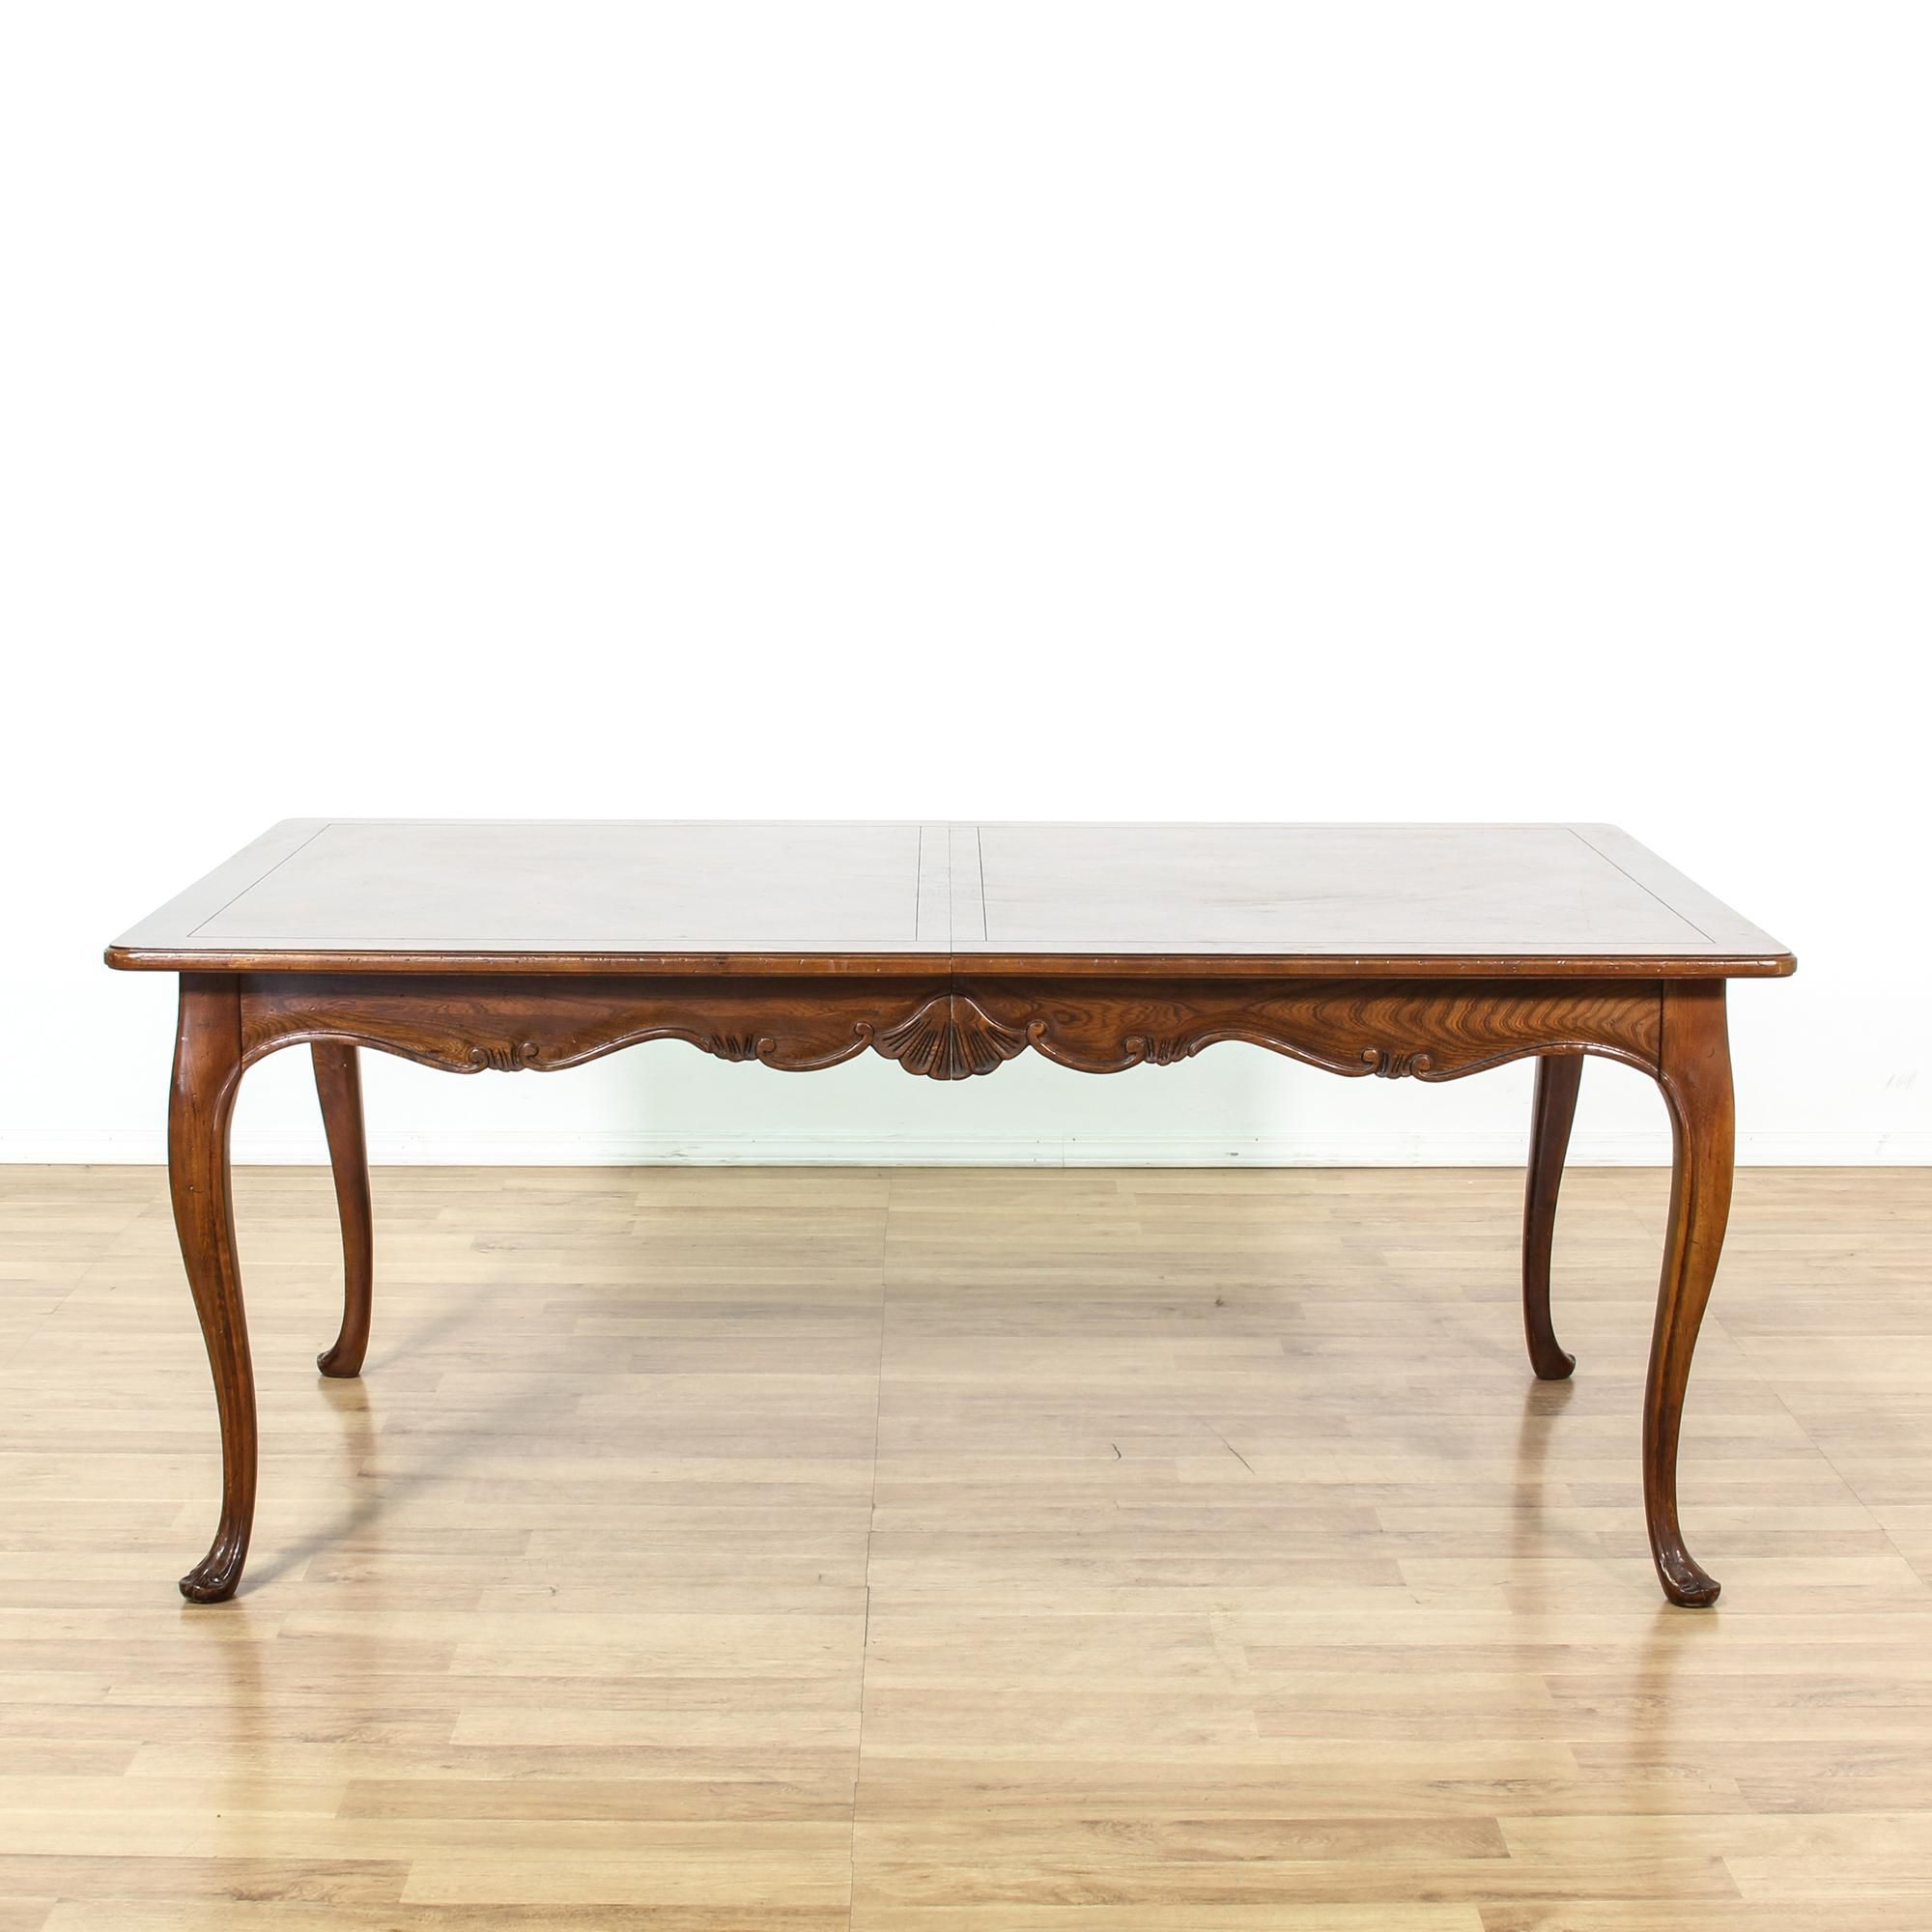 This french provincial dining table is featured in a solid wood